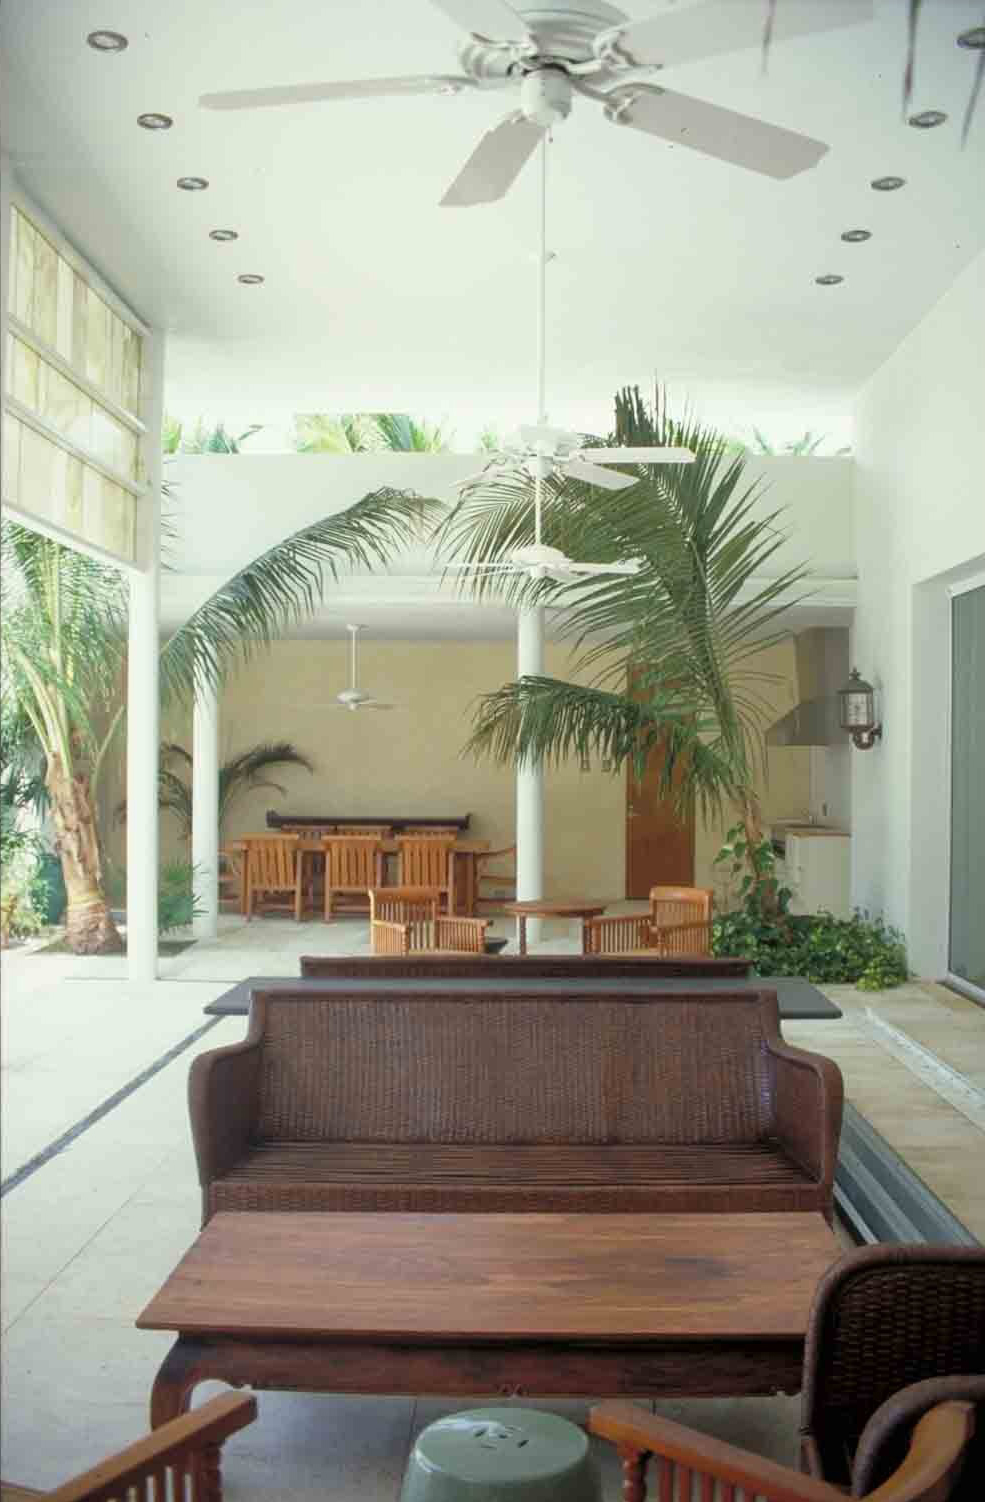 PALM BEACH HOUSE-09.jpg